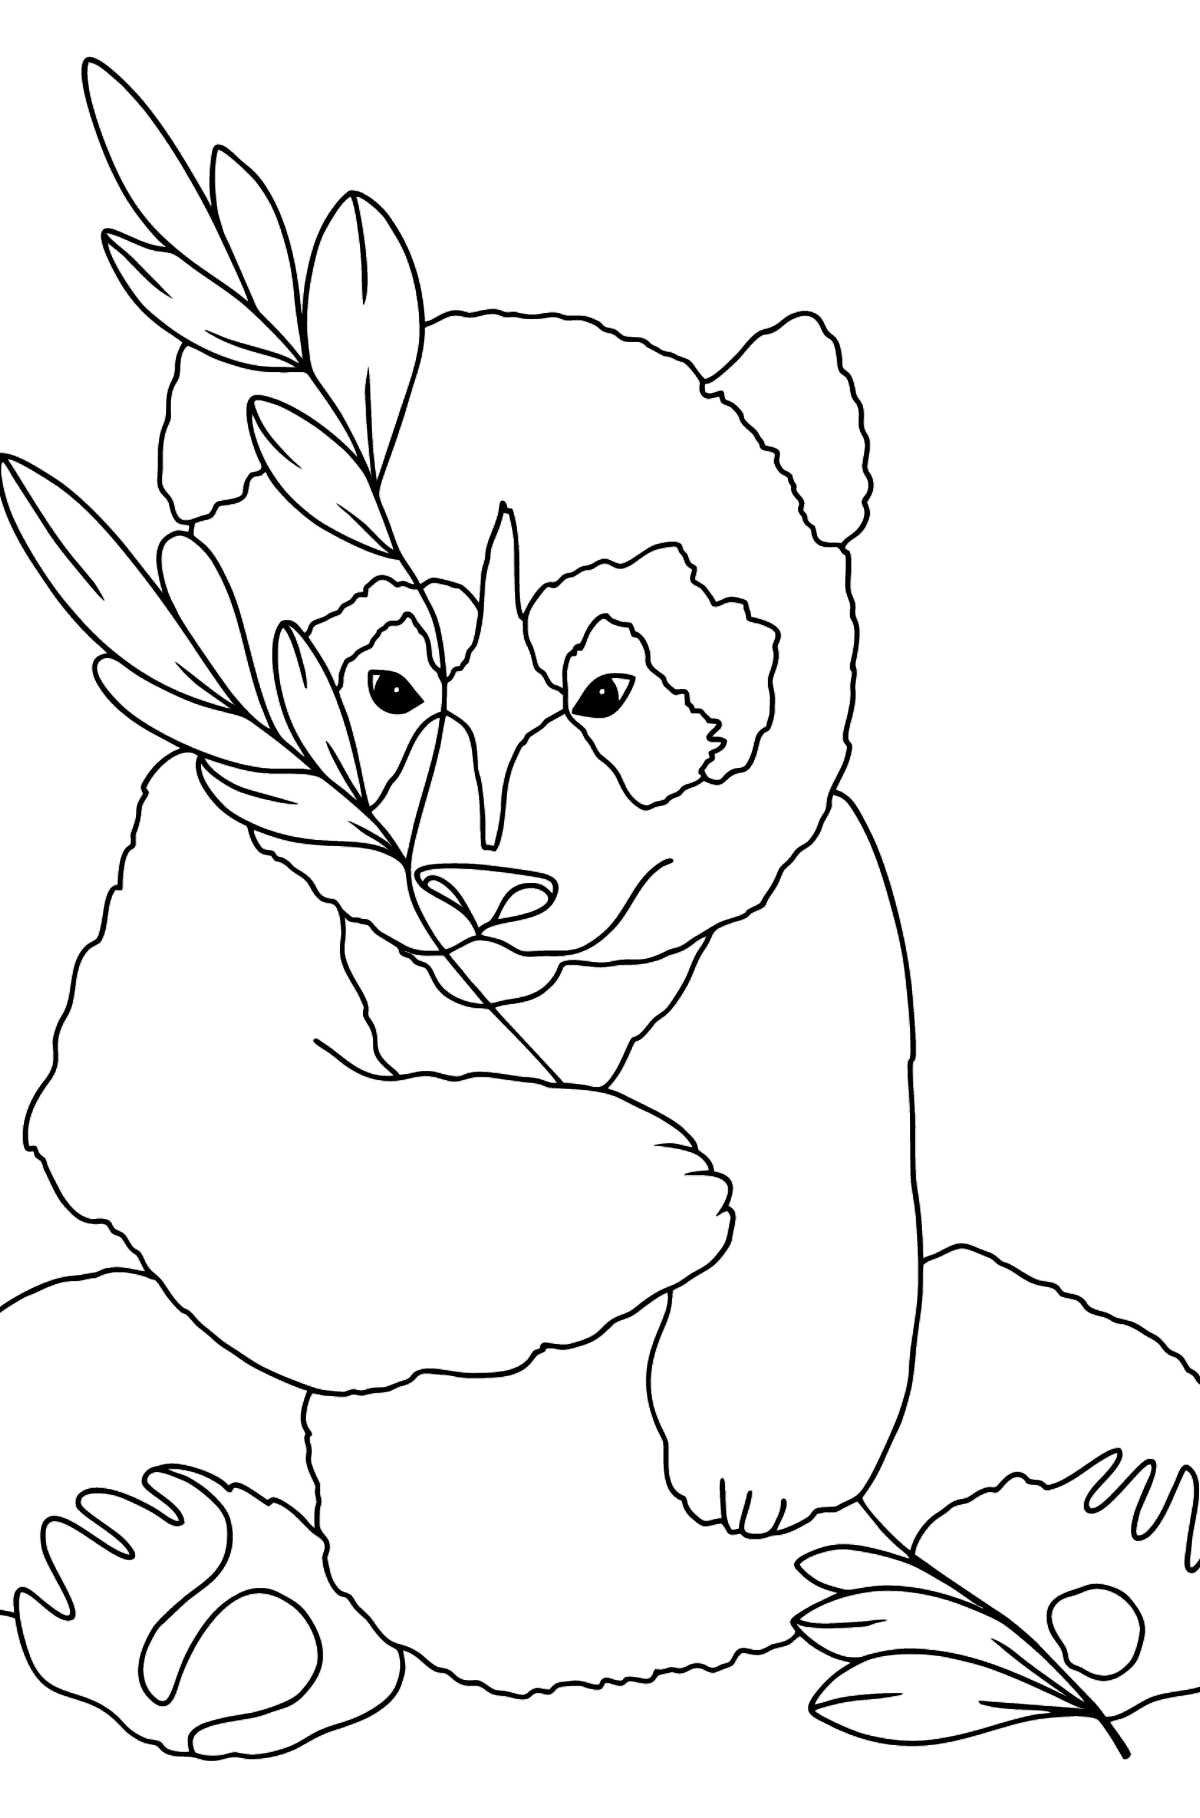 Coloring Page - A Panda is Having a Rest - Coloring Pages for Kids